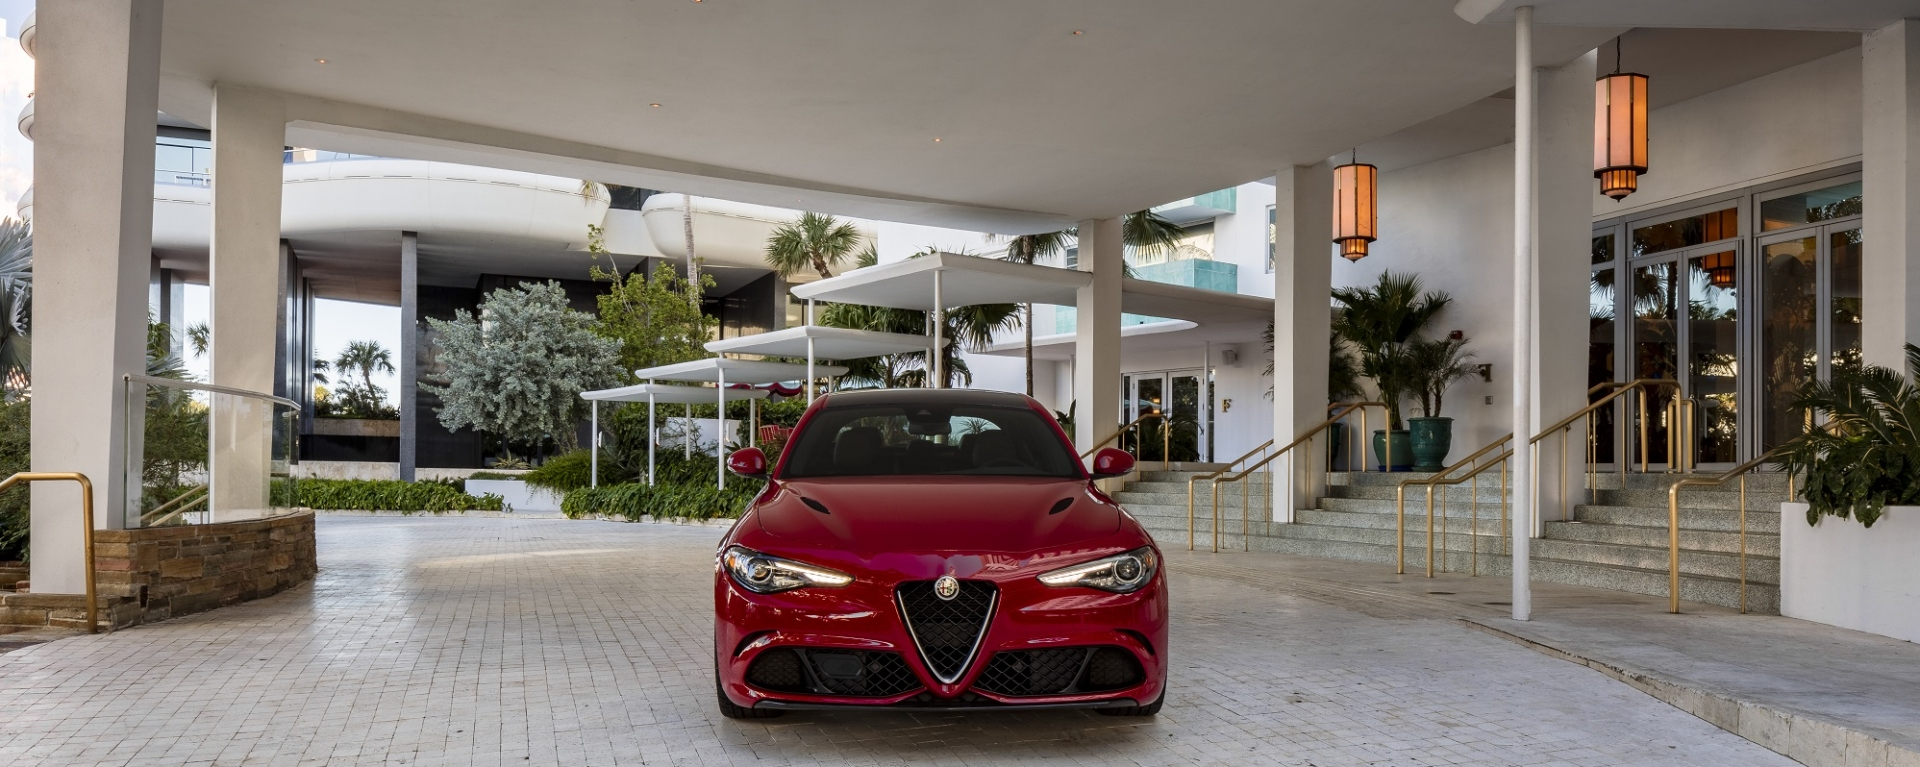 red alfa romeo car parked under Faena sign